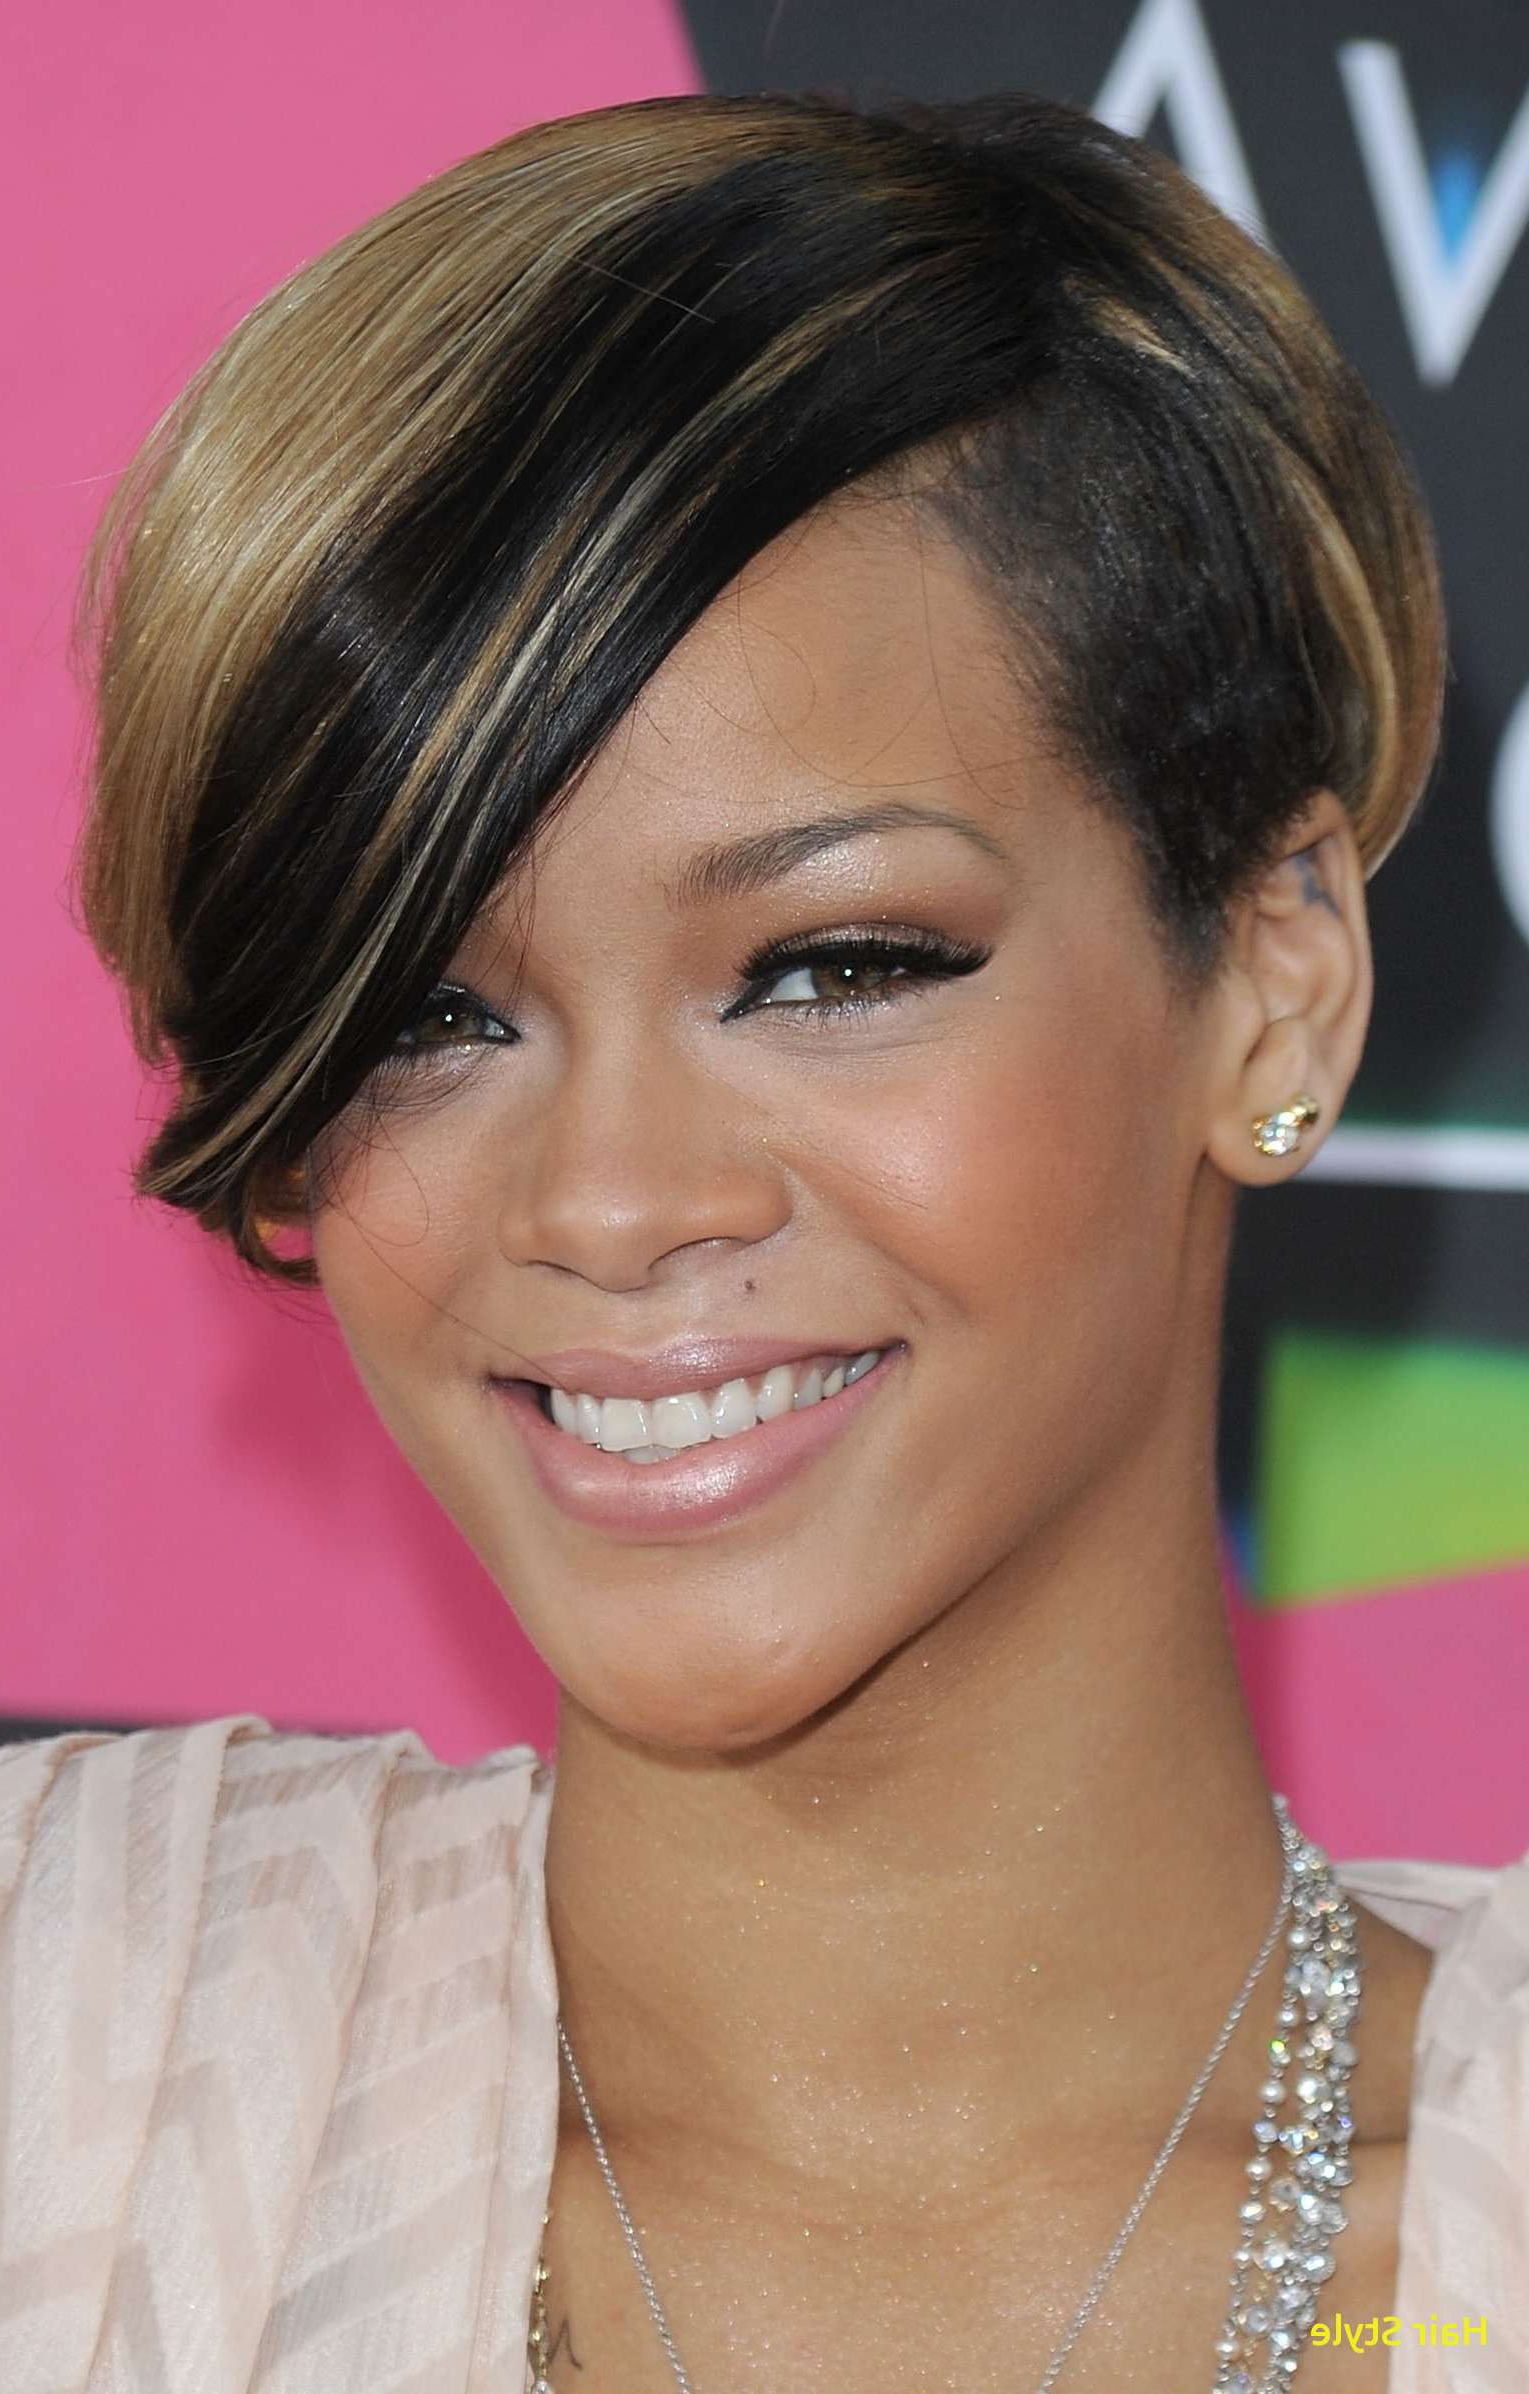 Cute Short Hairstyles For Black Women Inspirational 33 Curly Regarding Short Haircuts For Black Women With Round Faces (View 21 of 25)